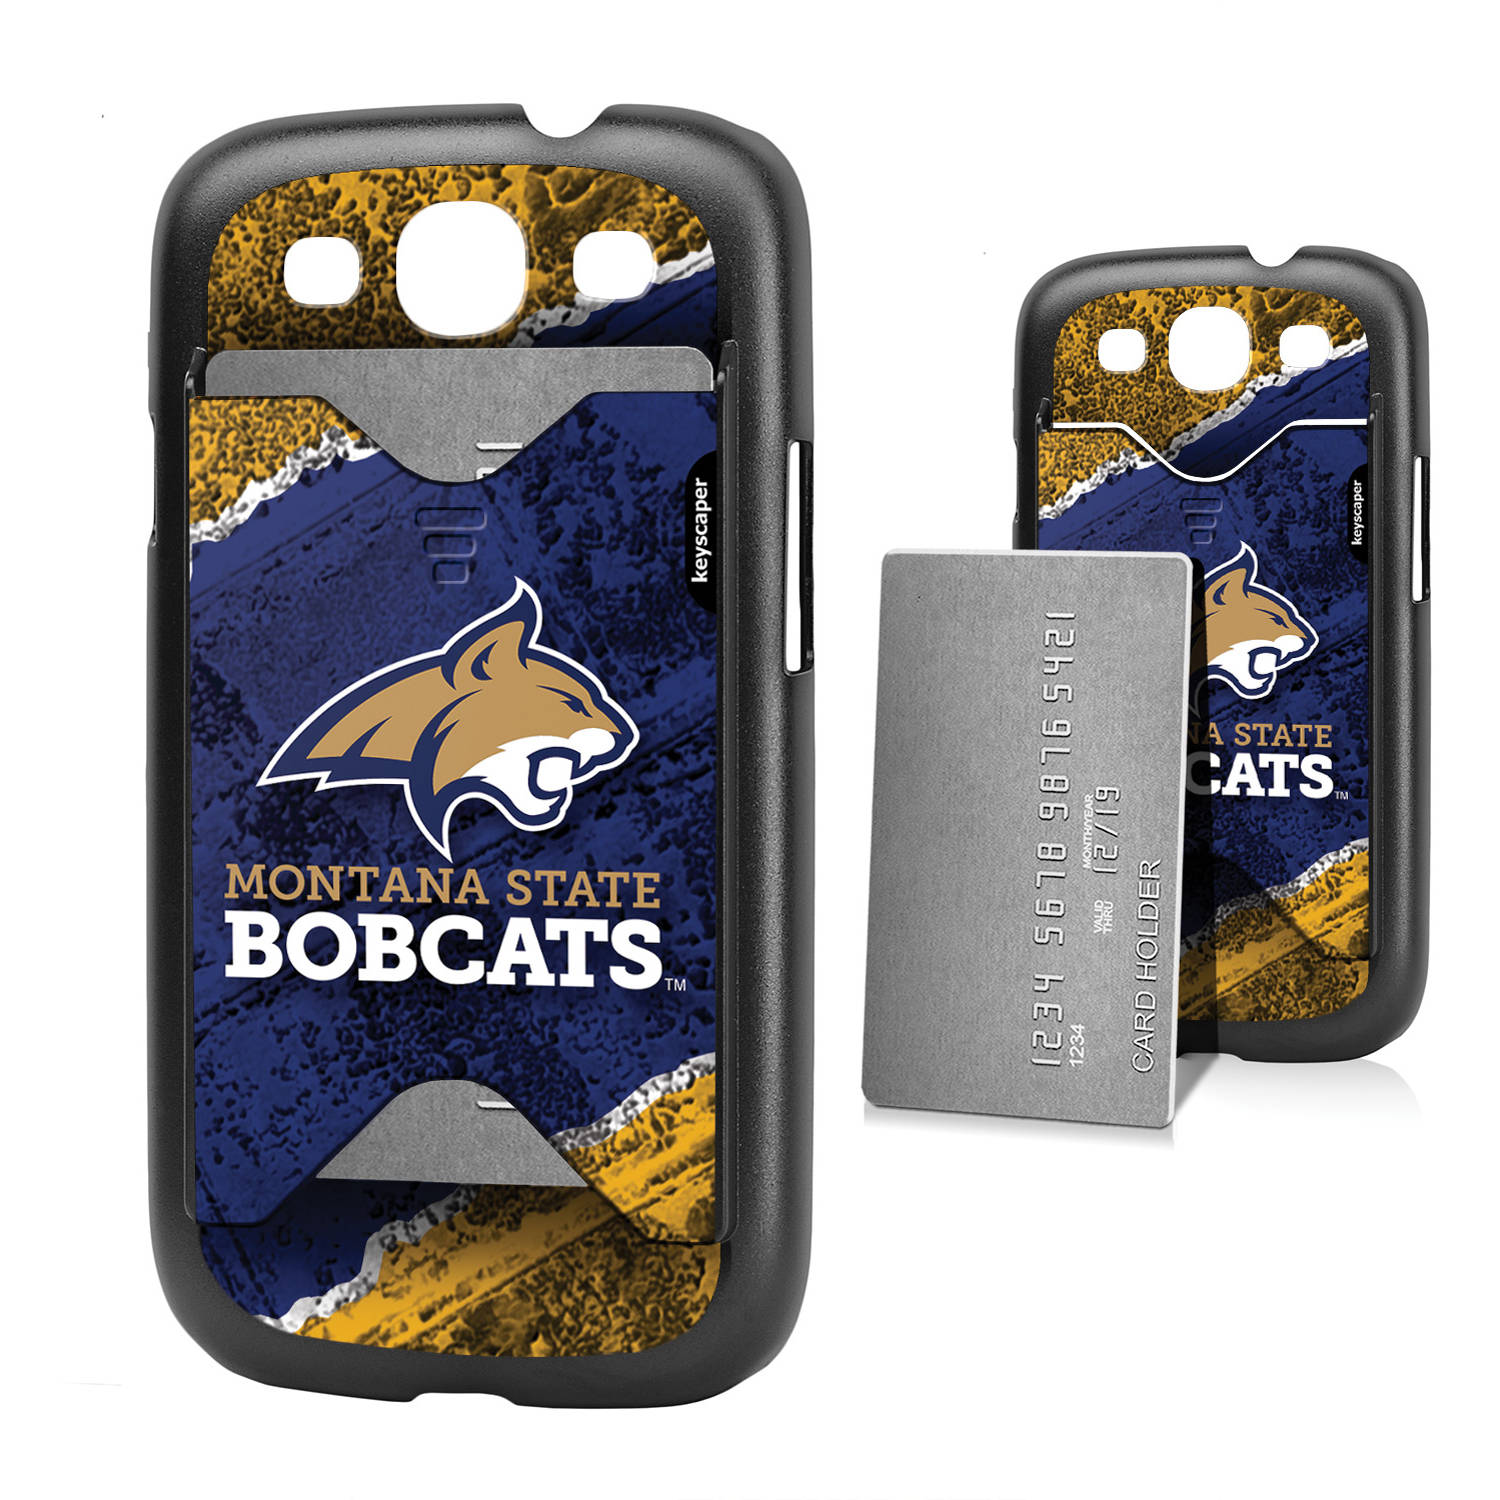 Montana State Bobcats Galaxy S3 Credit Card Case